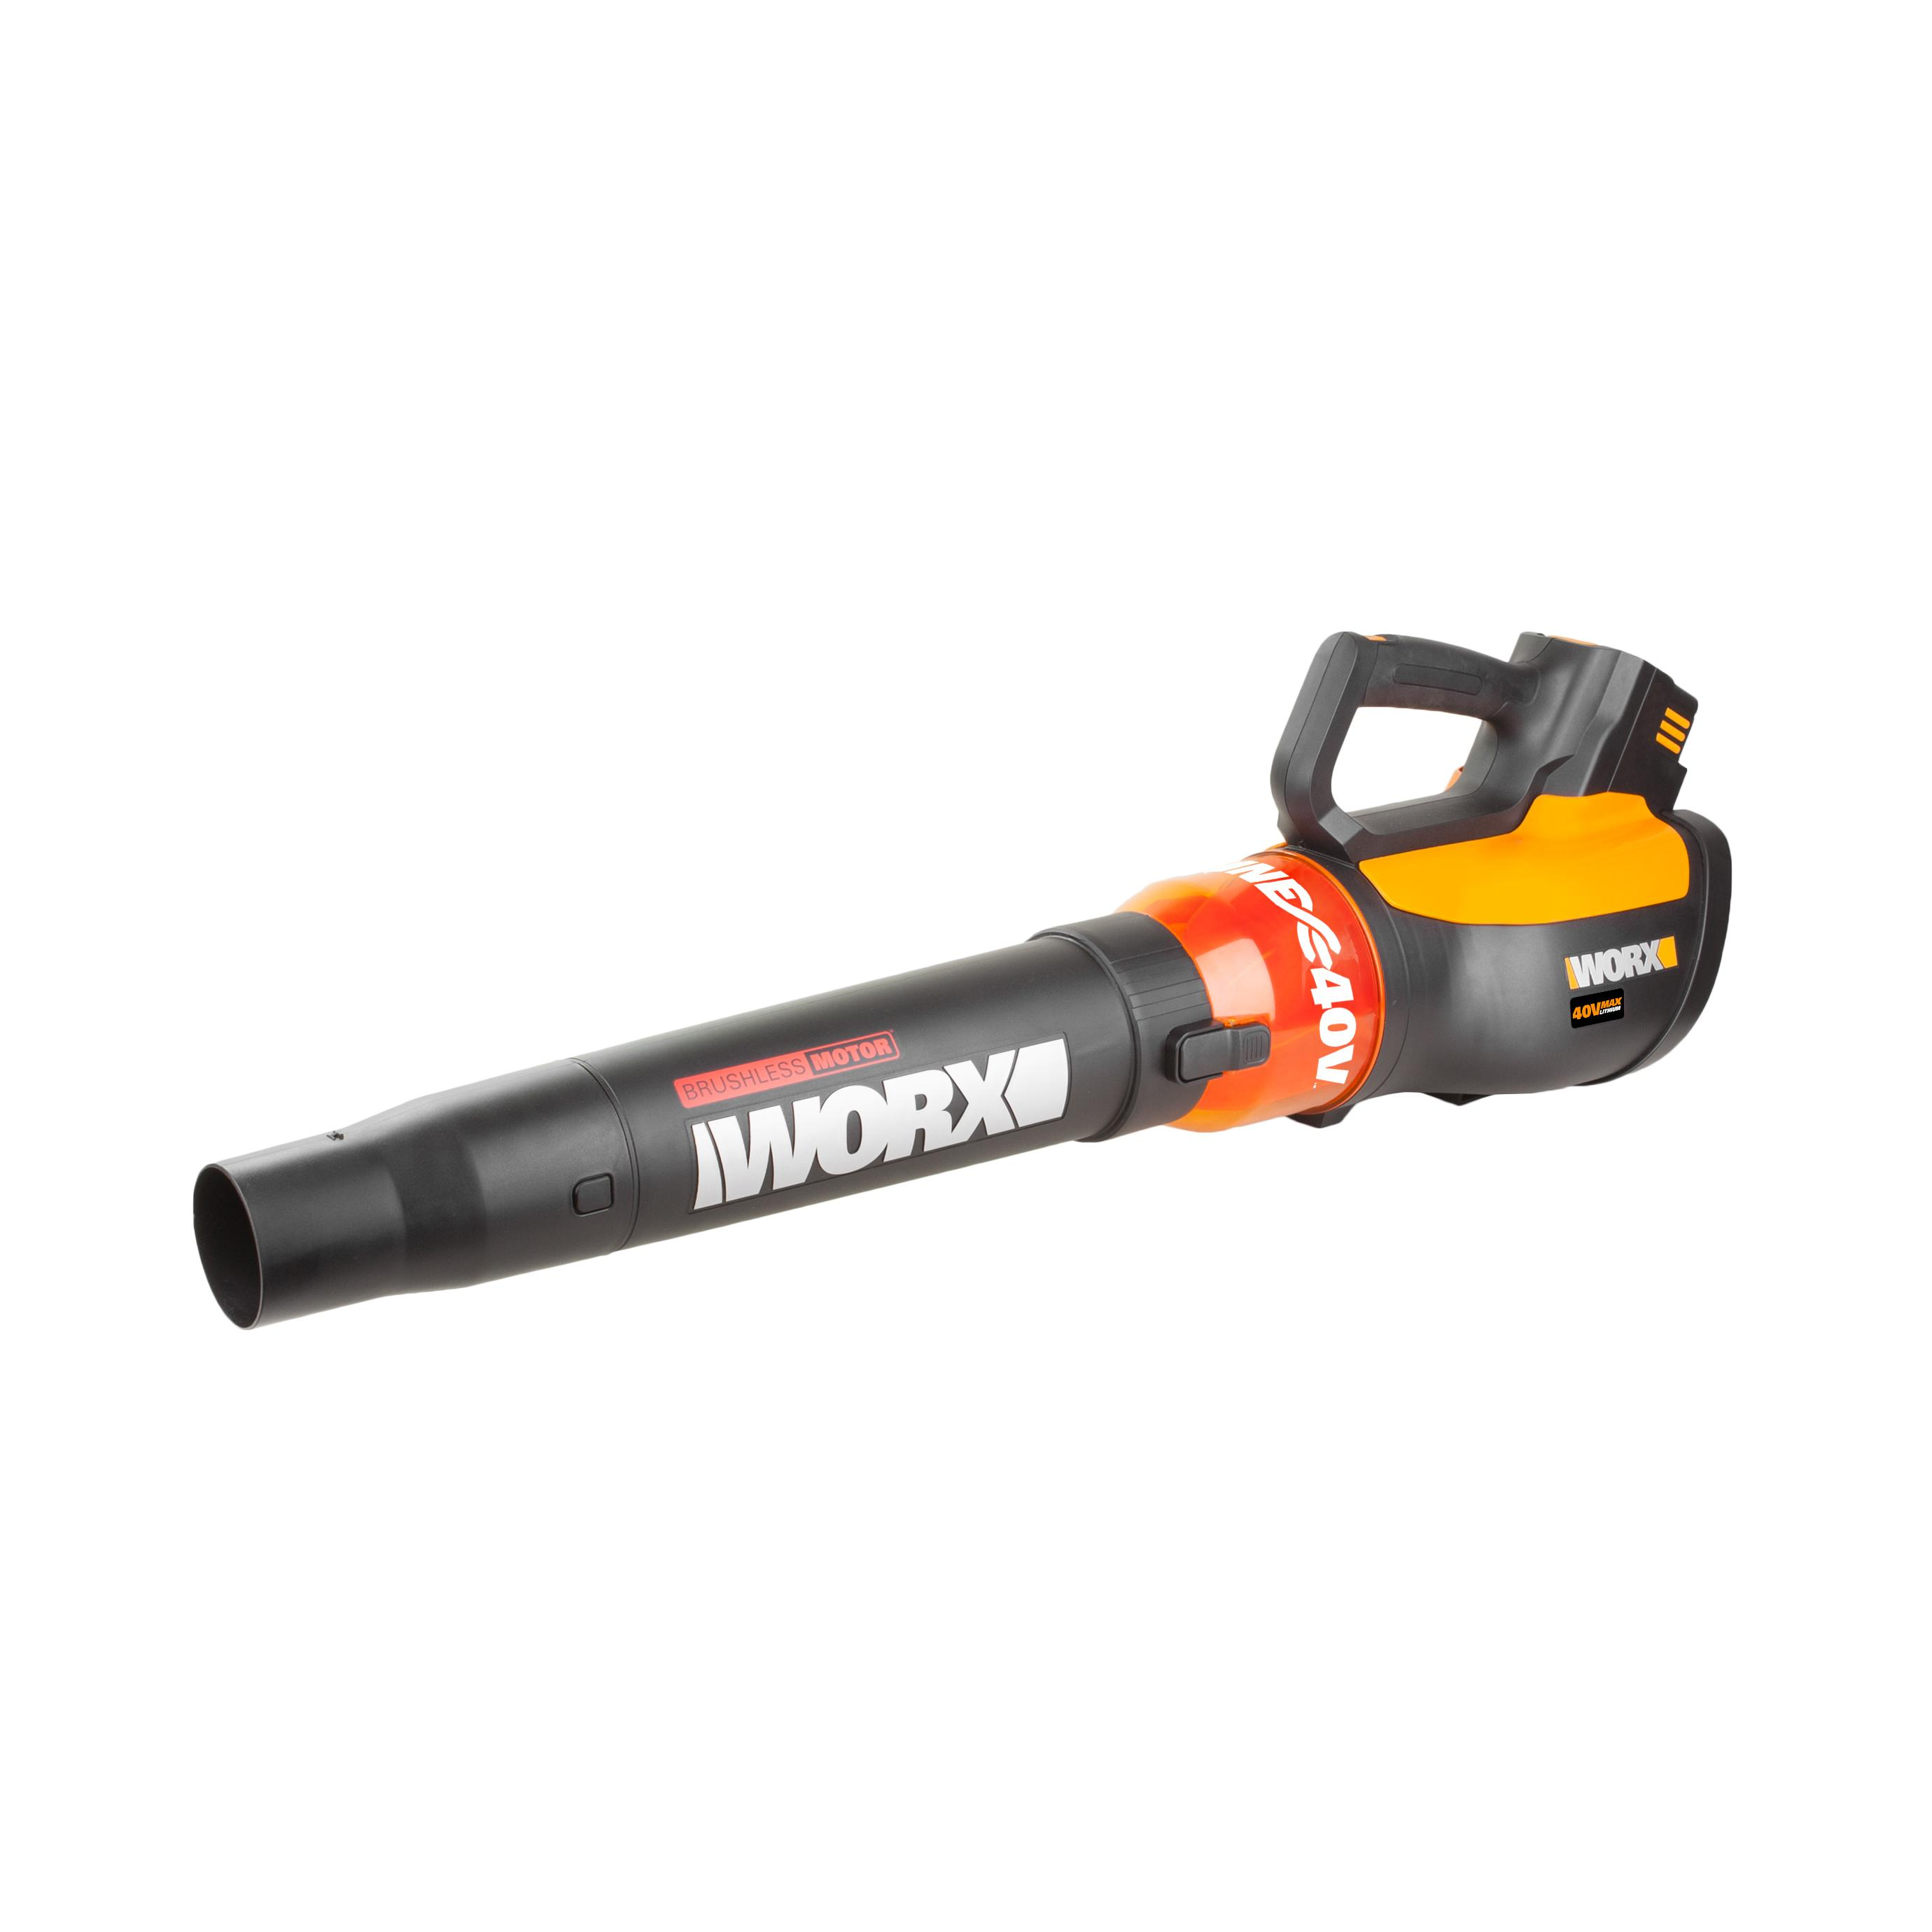 Air Blower Work : Worx wg e v brushless cordless air turbine leaf blower